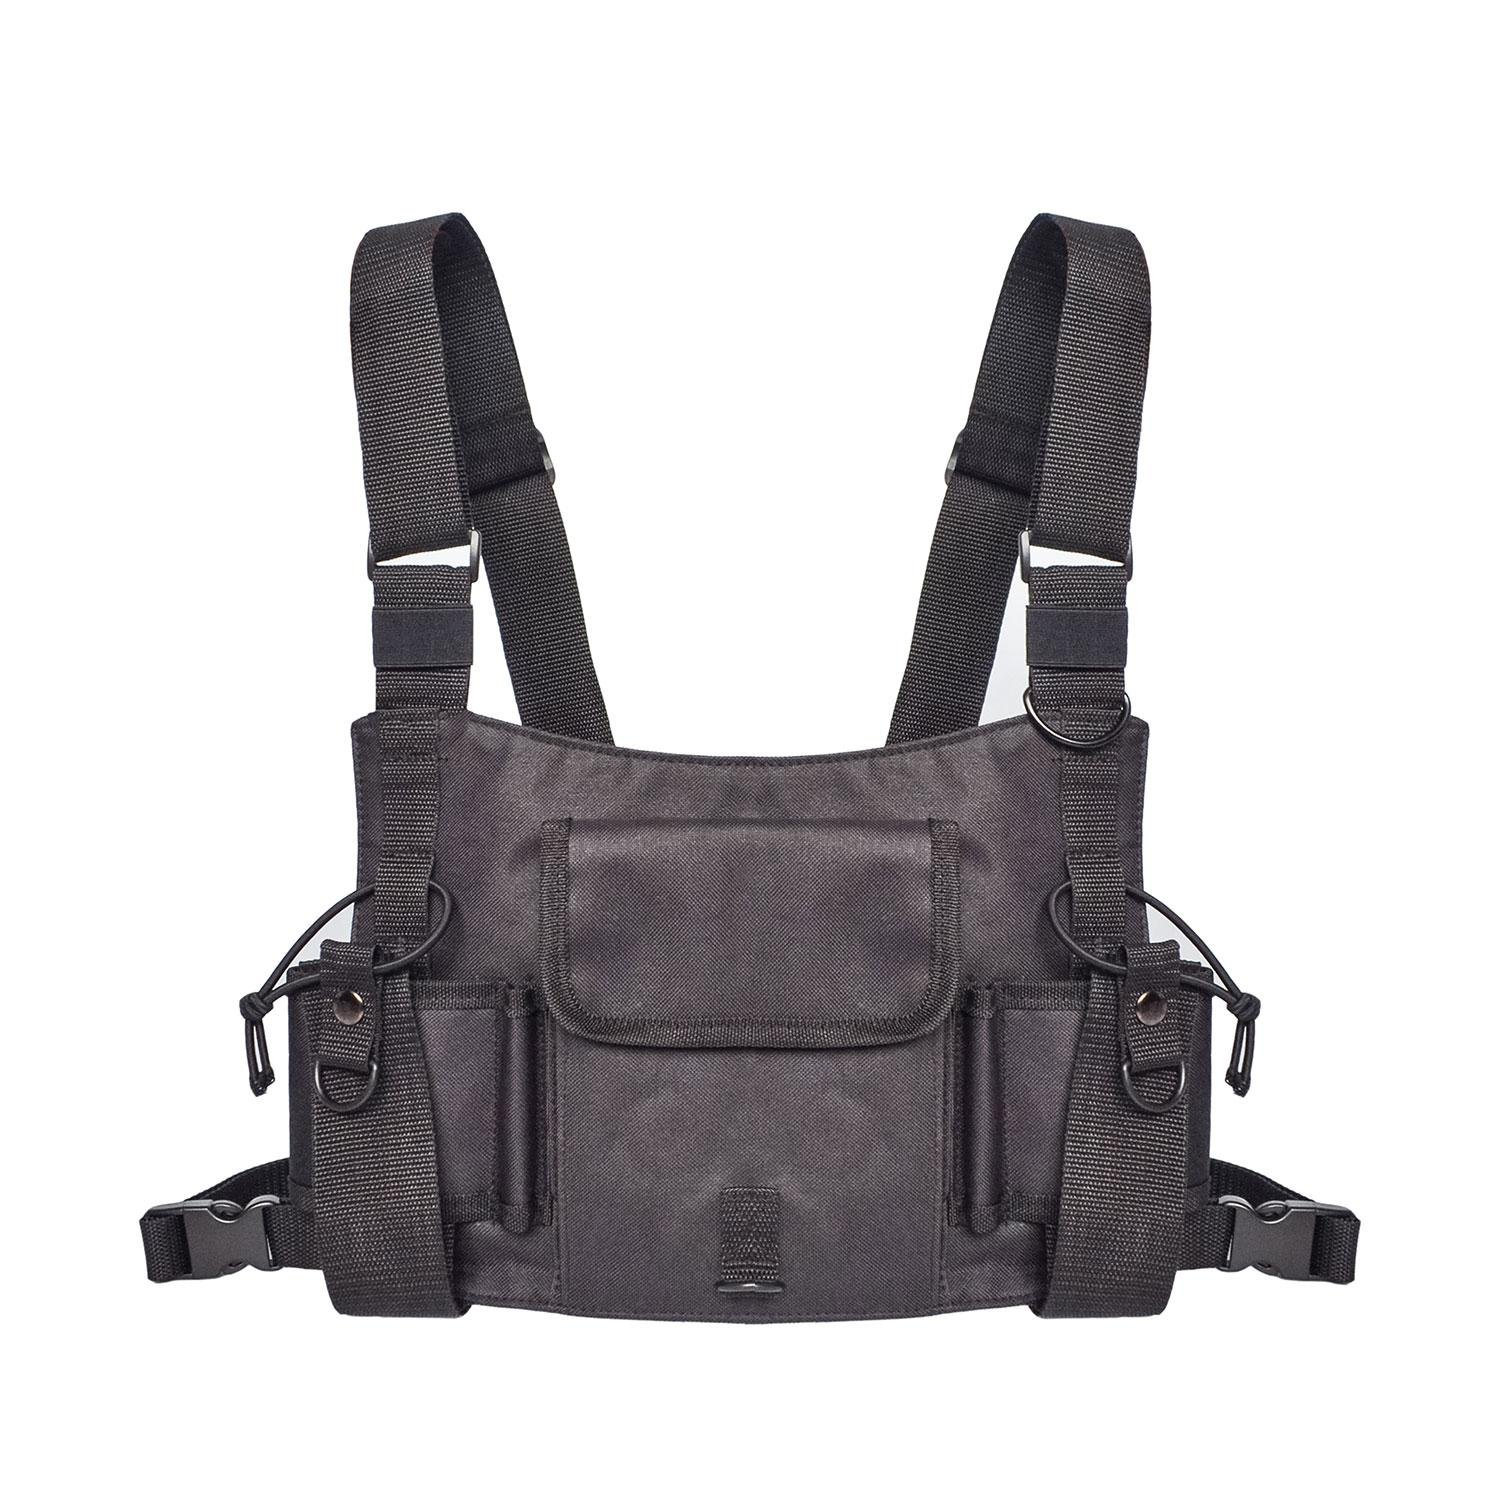 Womdee Universal Radio Chest Harness, Adjustable Chest Rig Bag for Tow Way Radio Walkie Talkie